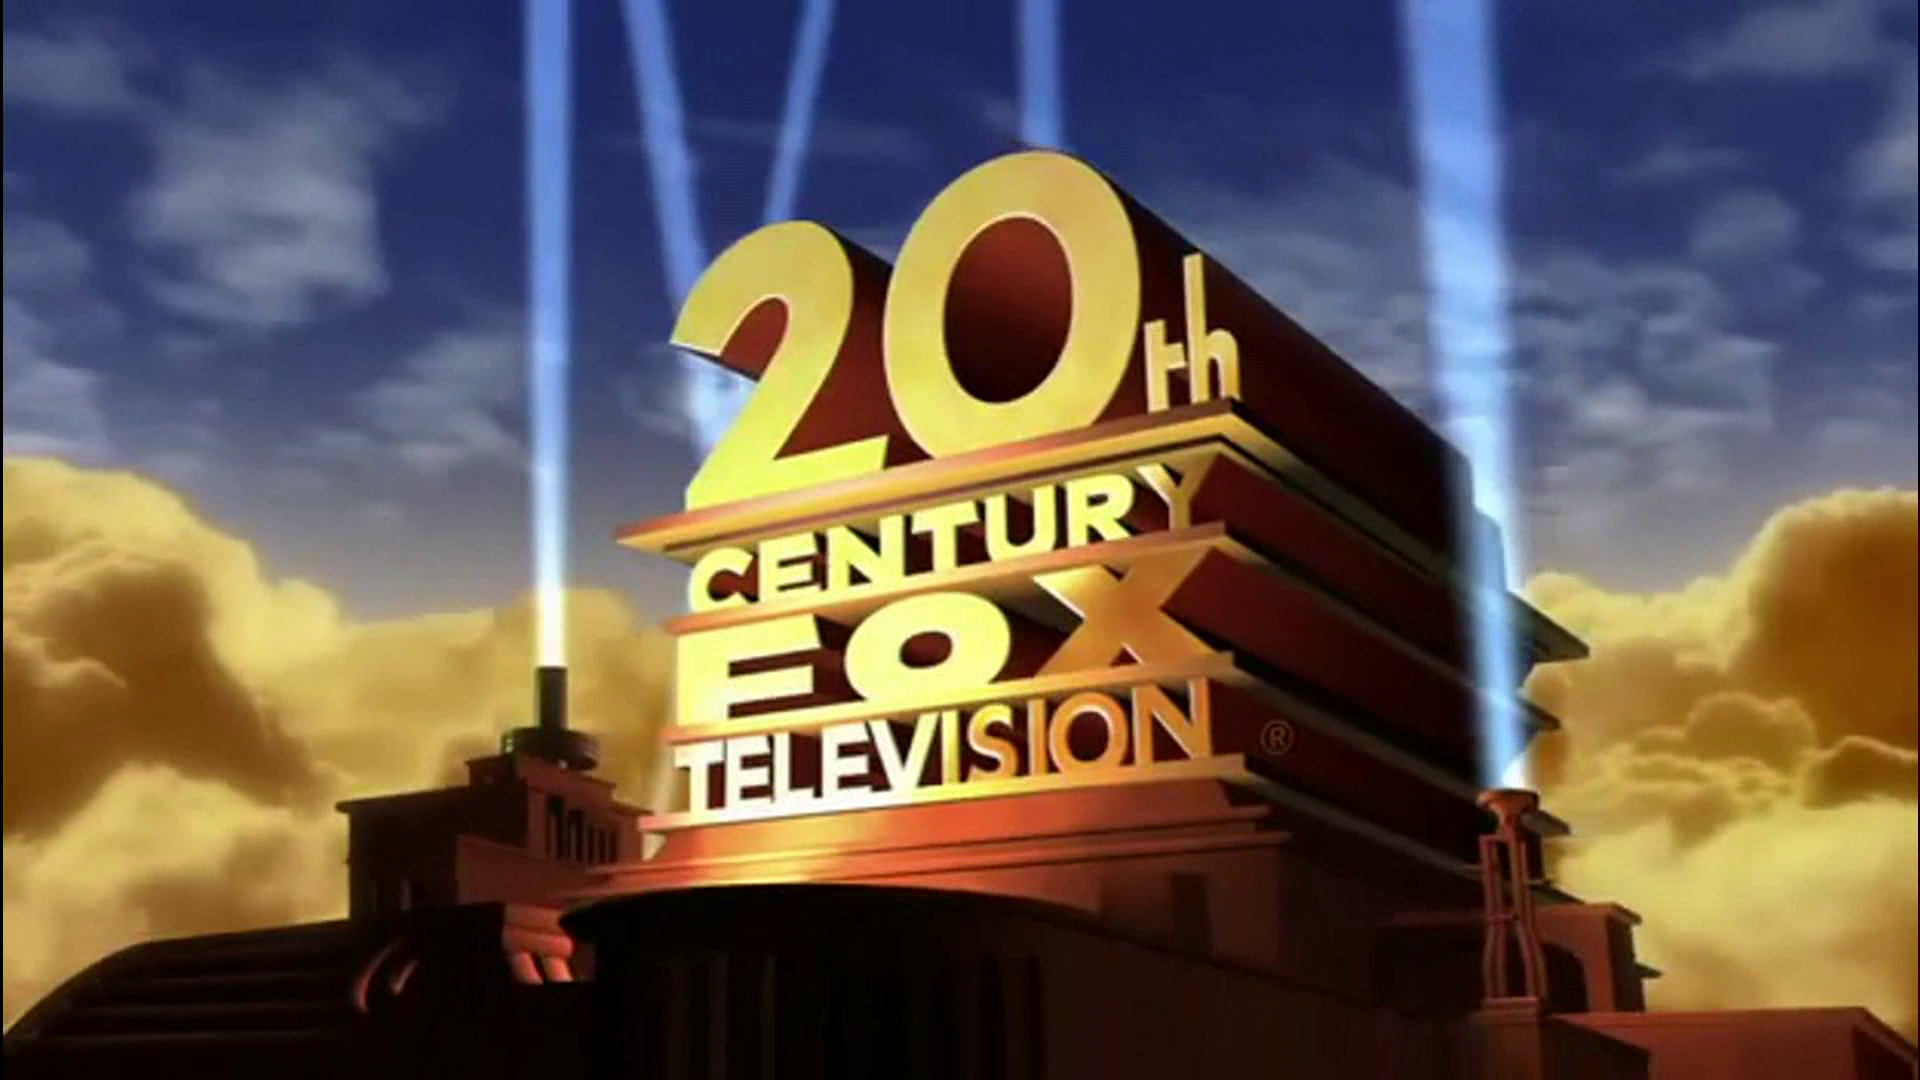 20th-Century-Fox-Home-Entertainment-2013-logo-twentieth-century-fox-film-corporation-35558981-1920-1080